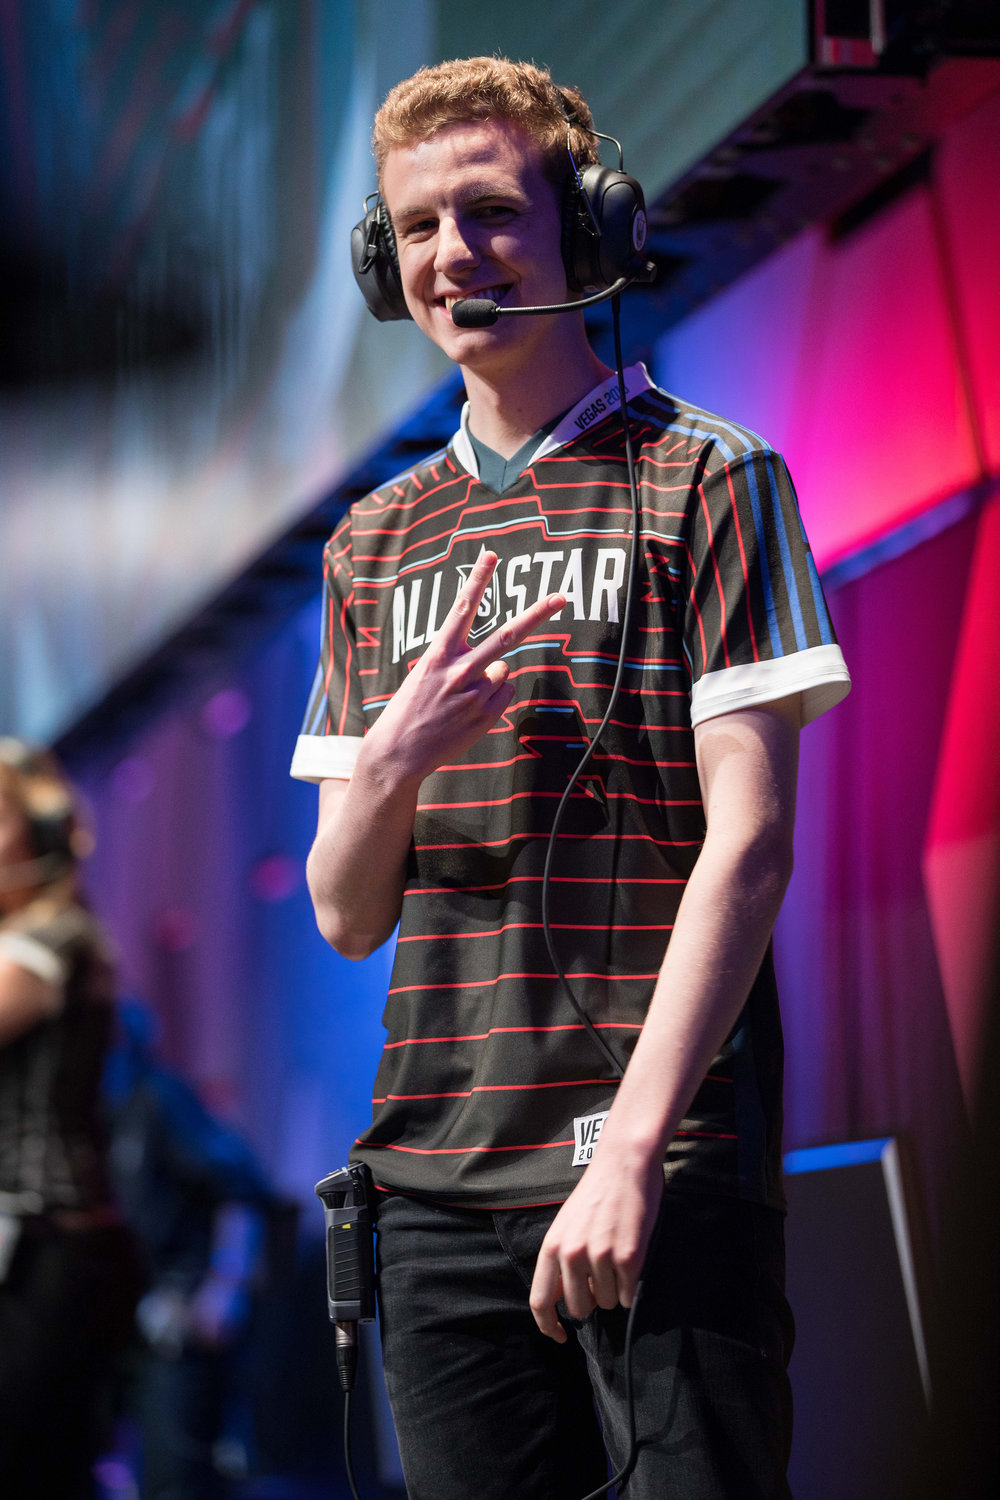 Esports pro player giving a peace sign to crowd onstage at League of Legends All-Star Event on December 8, 2018 in Las Vegas, Nevada.  Photo by Hannah Smith/ESPAT Media for Mastercard